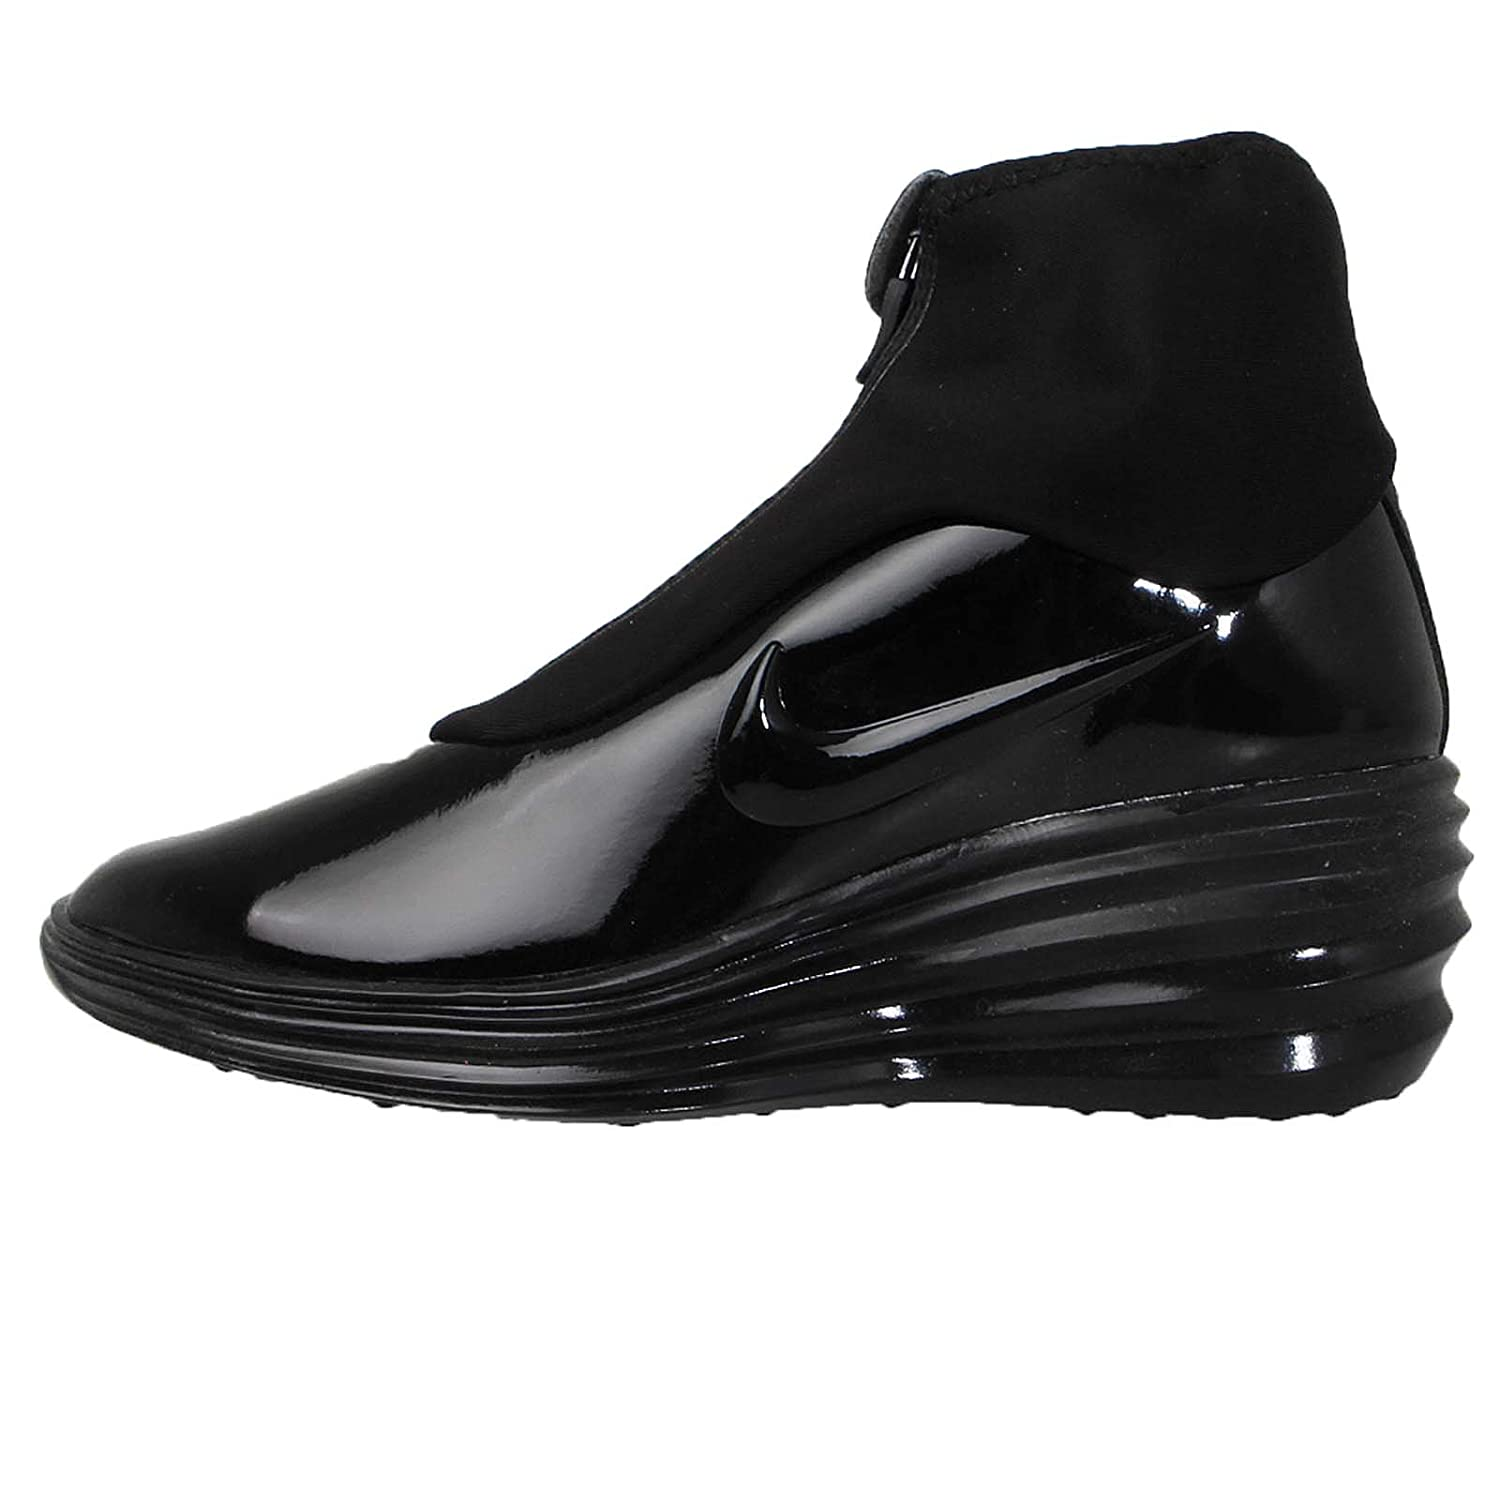 best website 9dba7 0f789 NIKE Lunar Elite Sky Hi Sneaker Boot Black Womens Black Size  5.5   Amazon.co.uk  Shoes   Bags